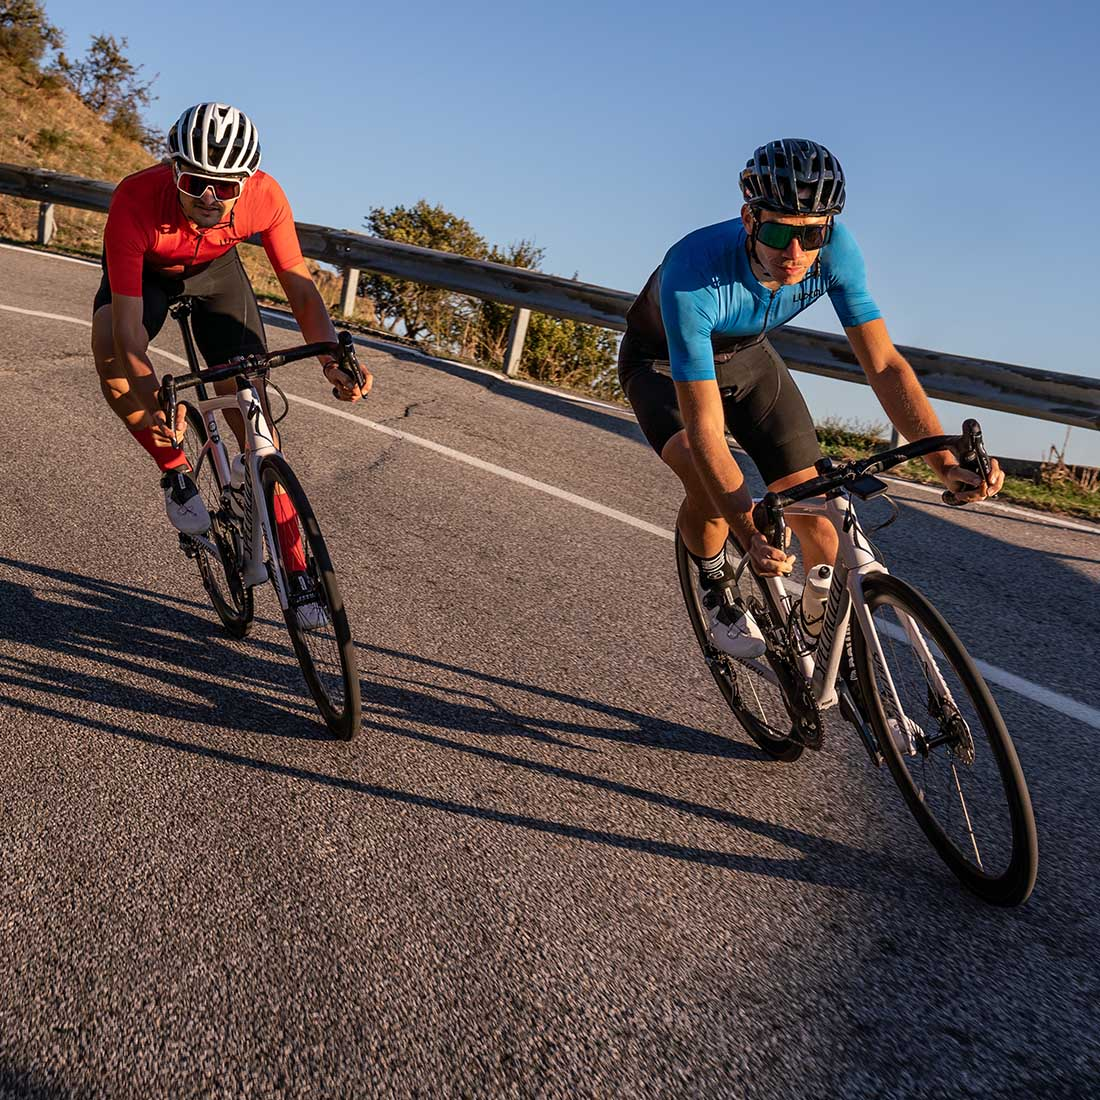 two road cyclists descending on Sicily road and wears luxa galaxy jerseys